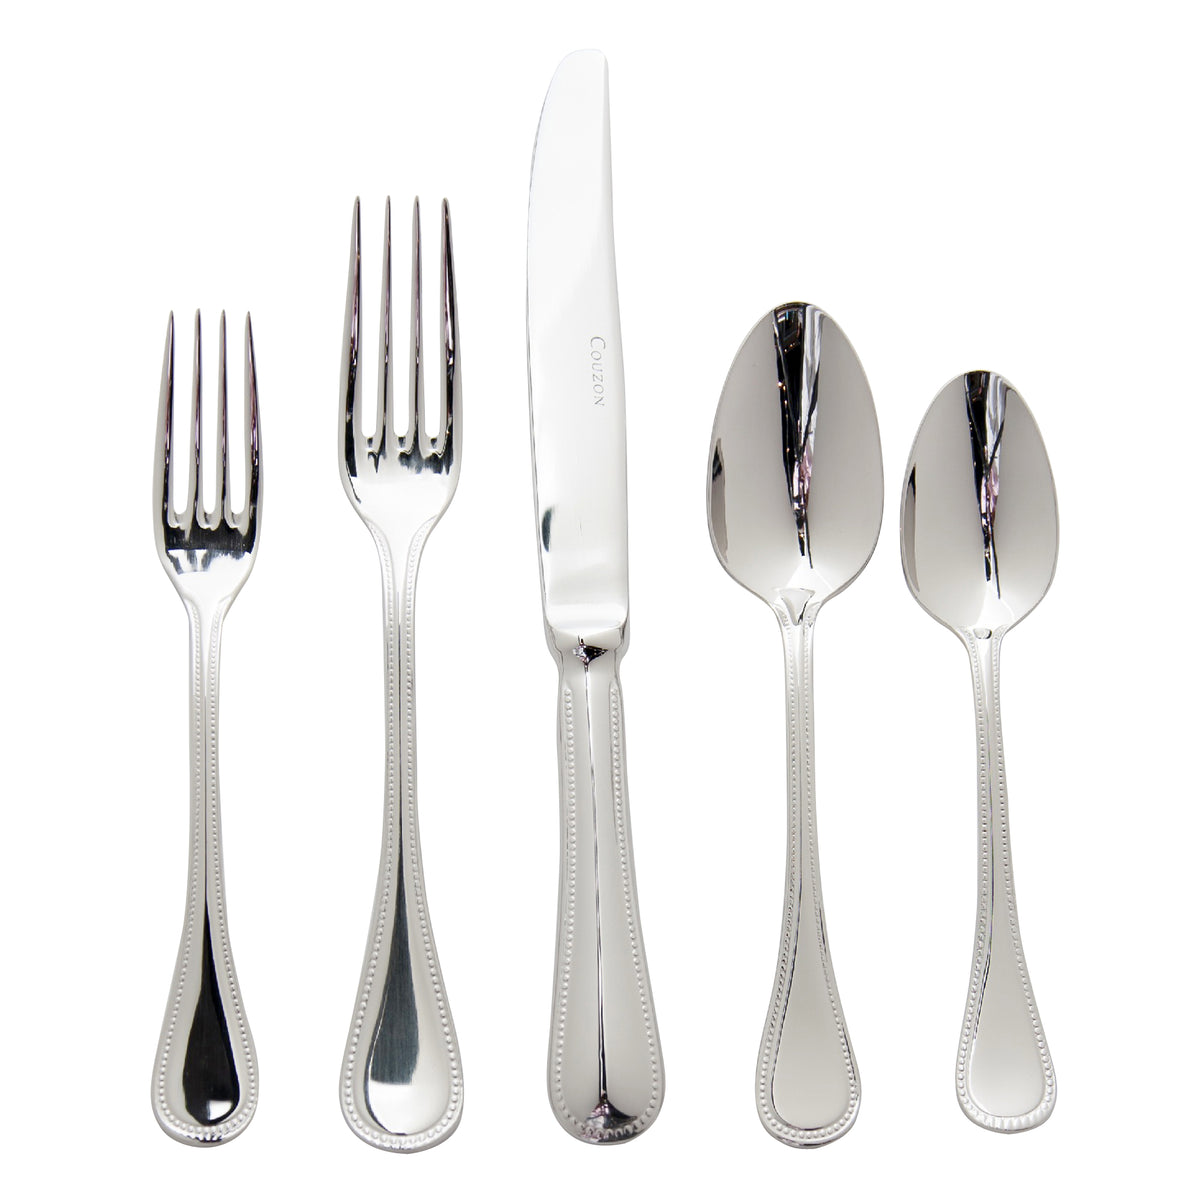 Le Perle 5-Piece Stainless Flatware